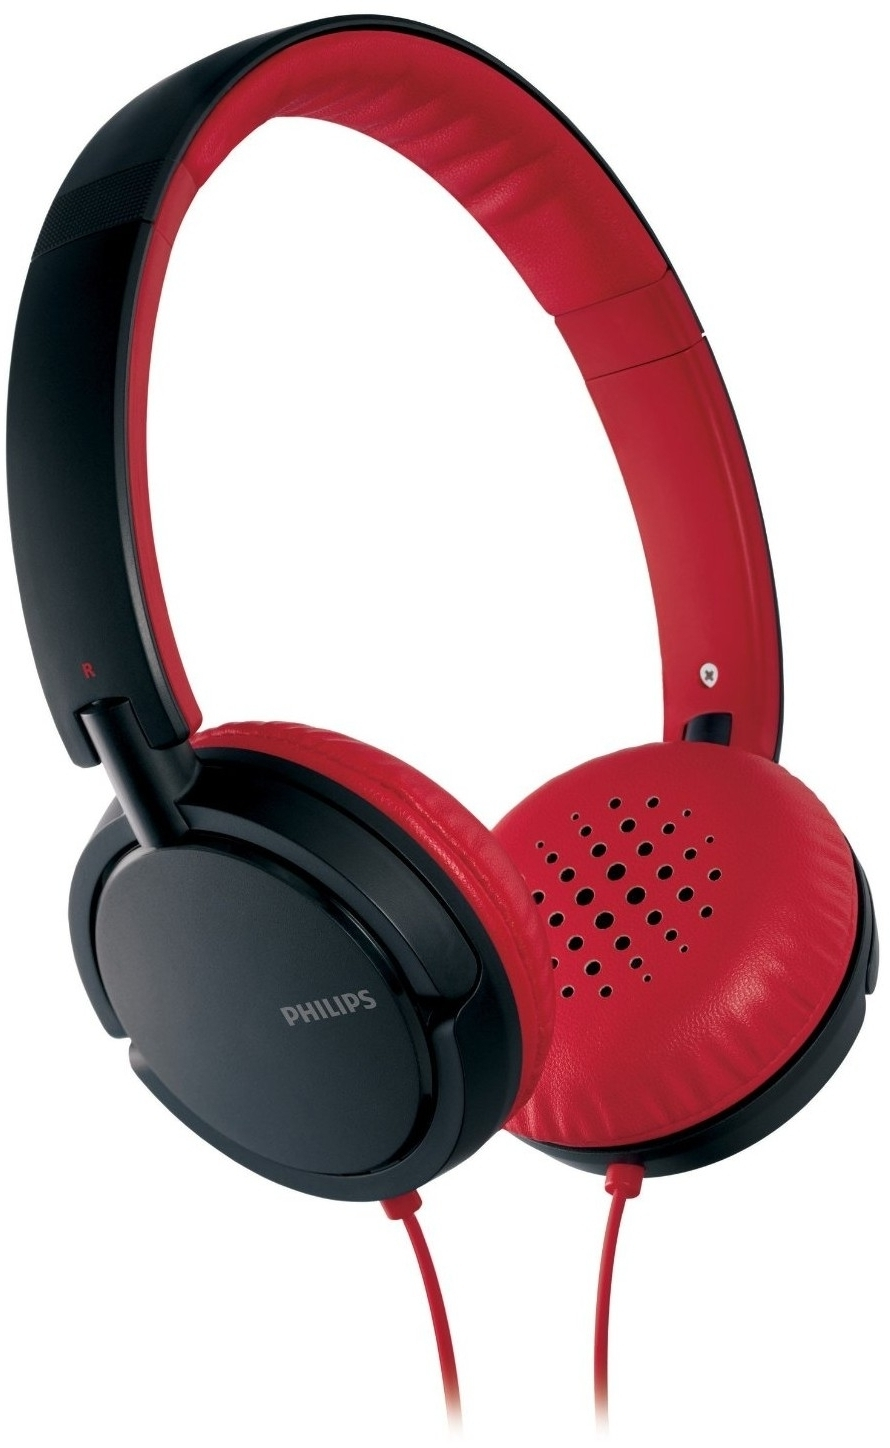 Philips Shl5000 Wired Headphones Price In India Buy Philips Shl5000 Wired Headphones Online